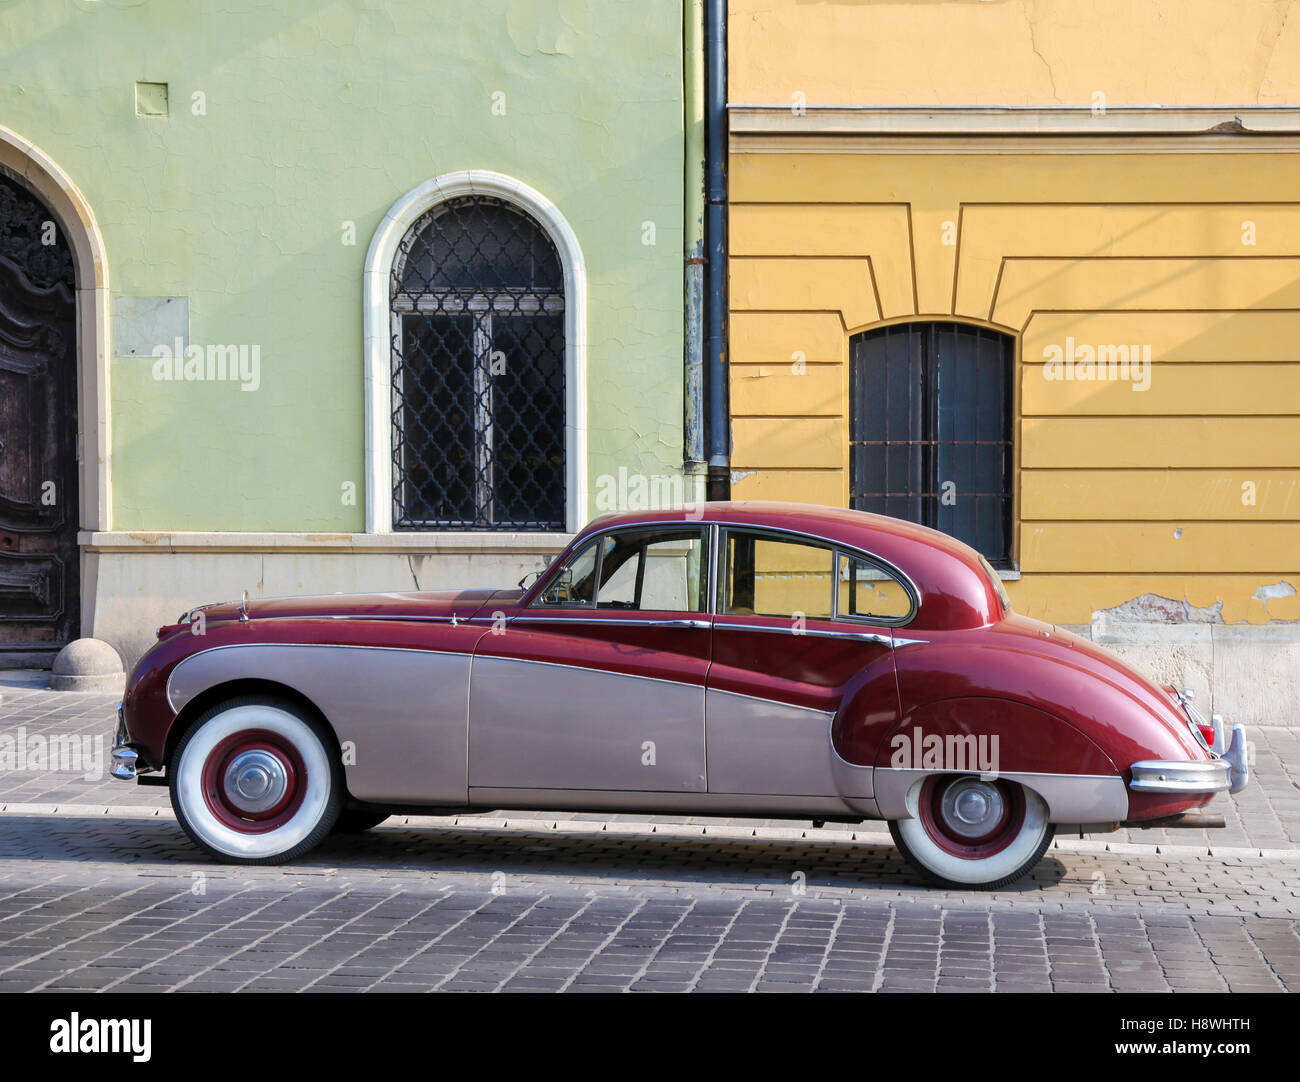 Parked Oldtimer in a street of Budapest, Hungary - Stock Image